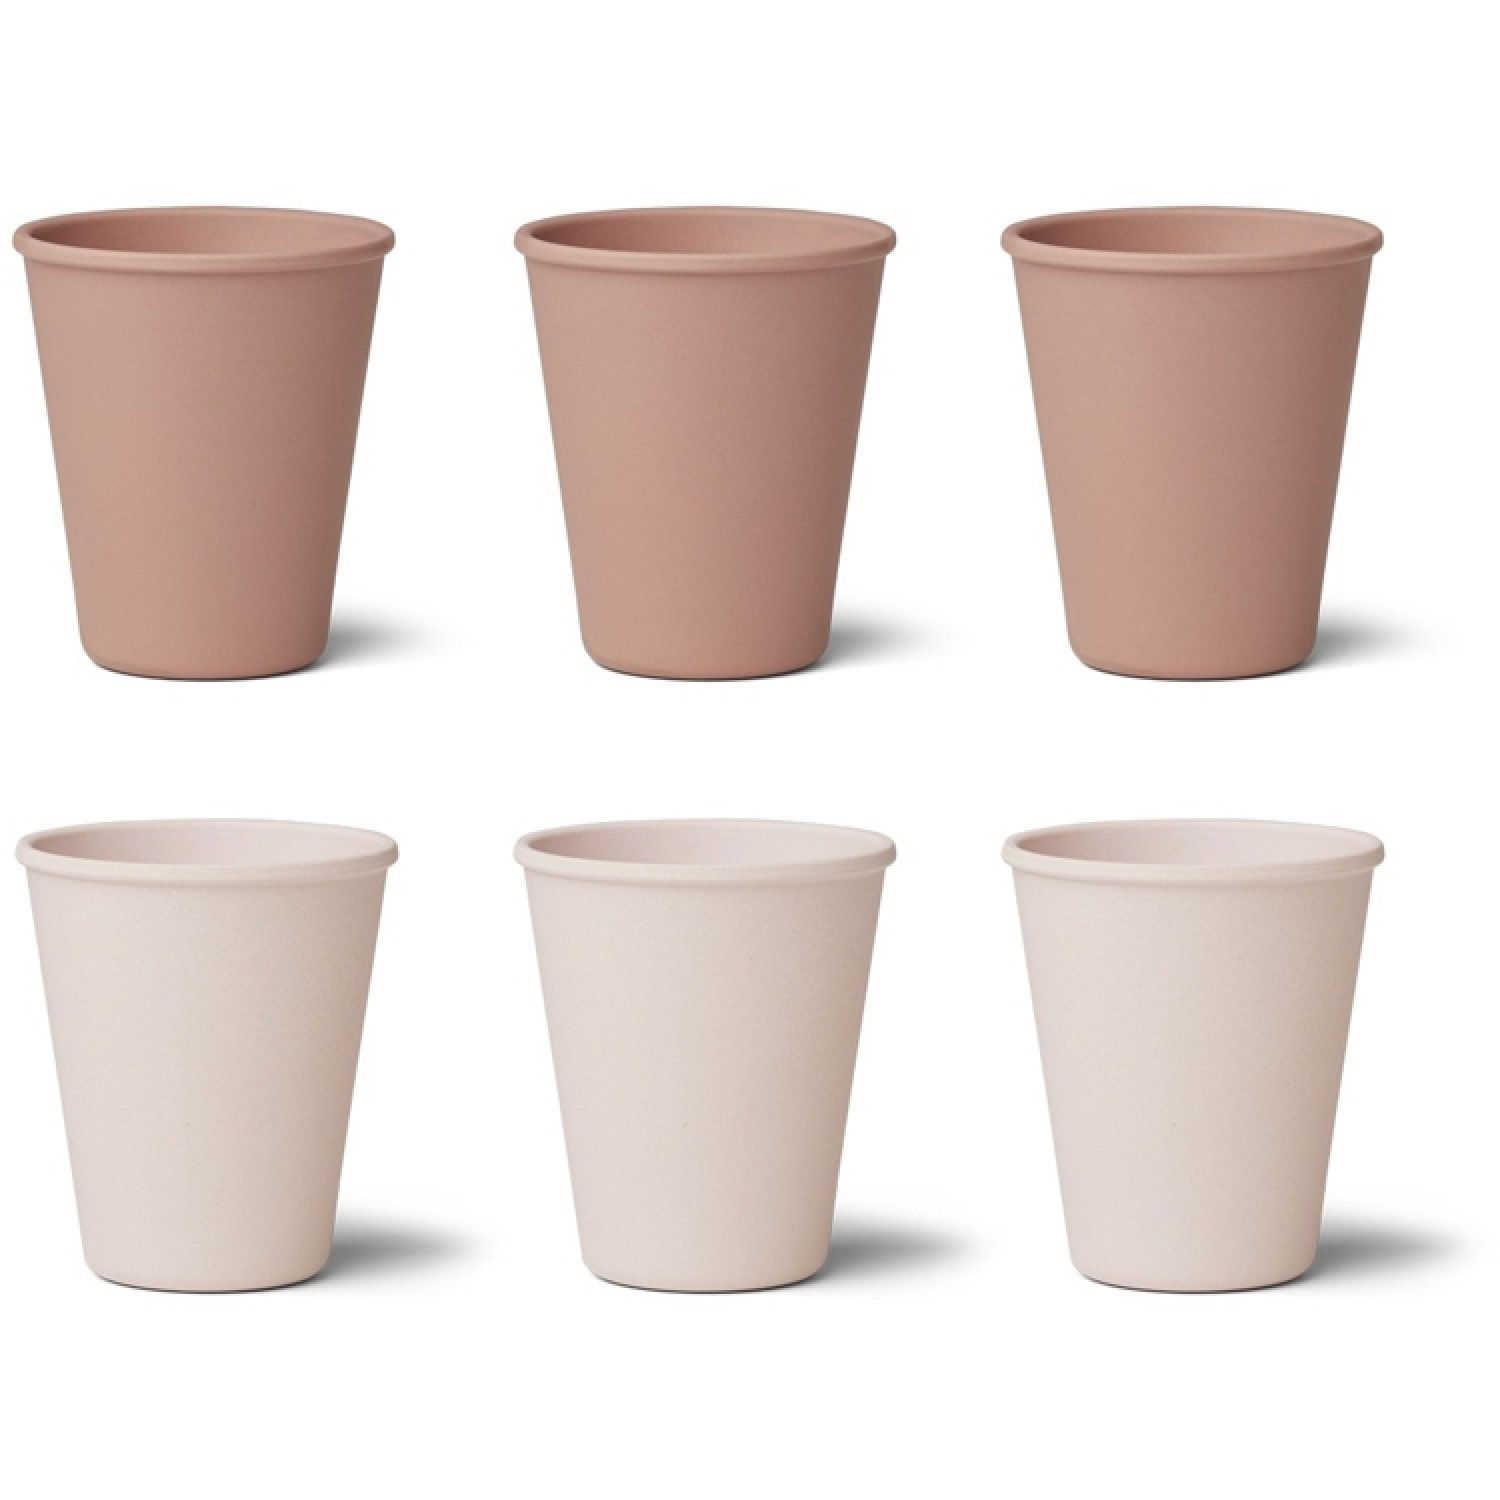 Bamboo Cup Gertud - 6 Pack | Coral Blush Mix